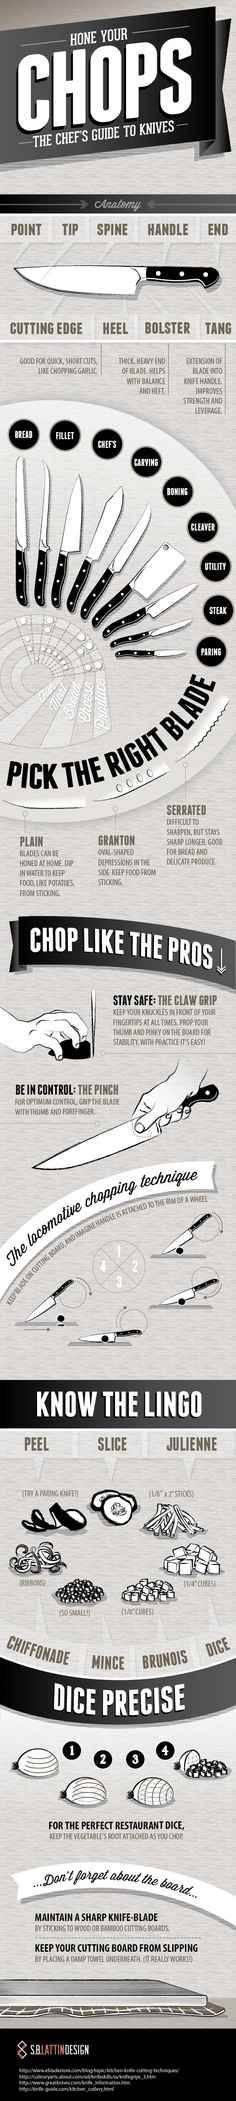 Know Your Knives and How to Use Them | 34 Creative Kitchen Hacks That Every Cook Should Know